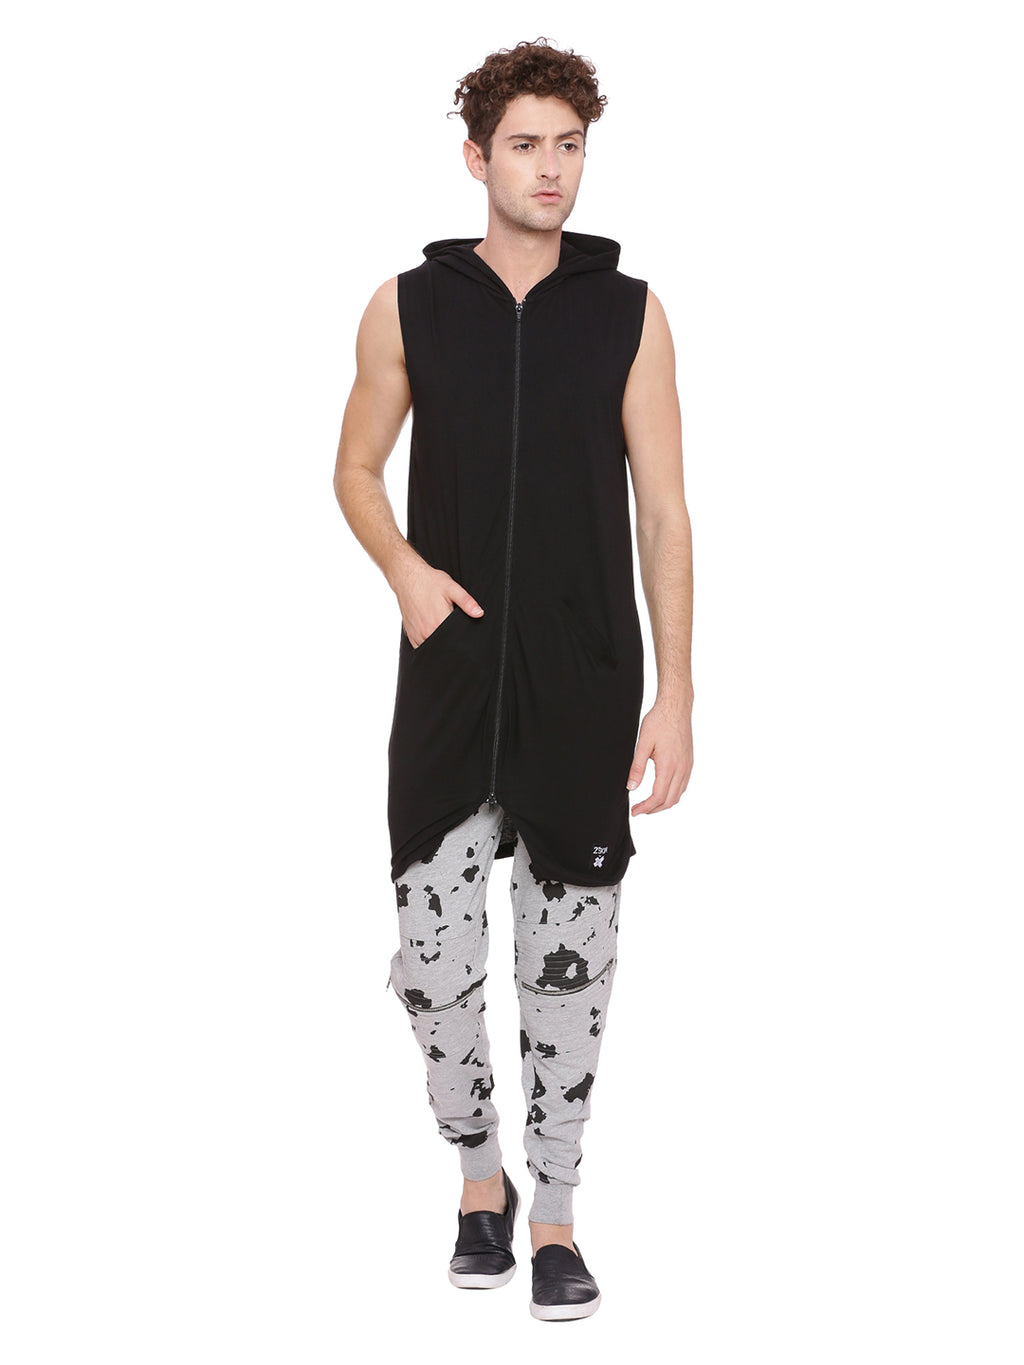 Hooded longline layering with zip